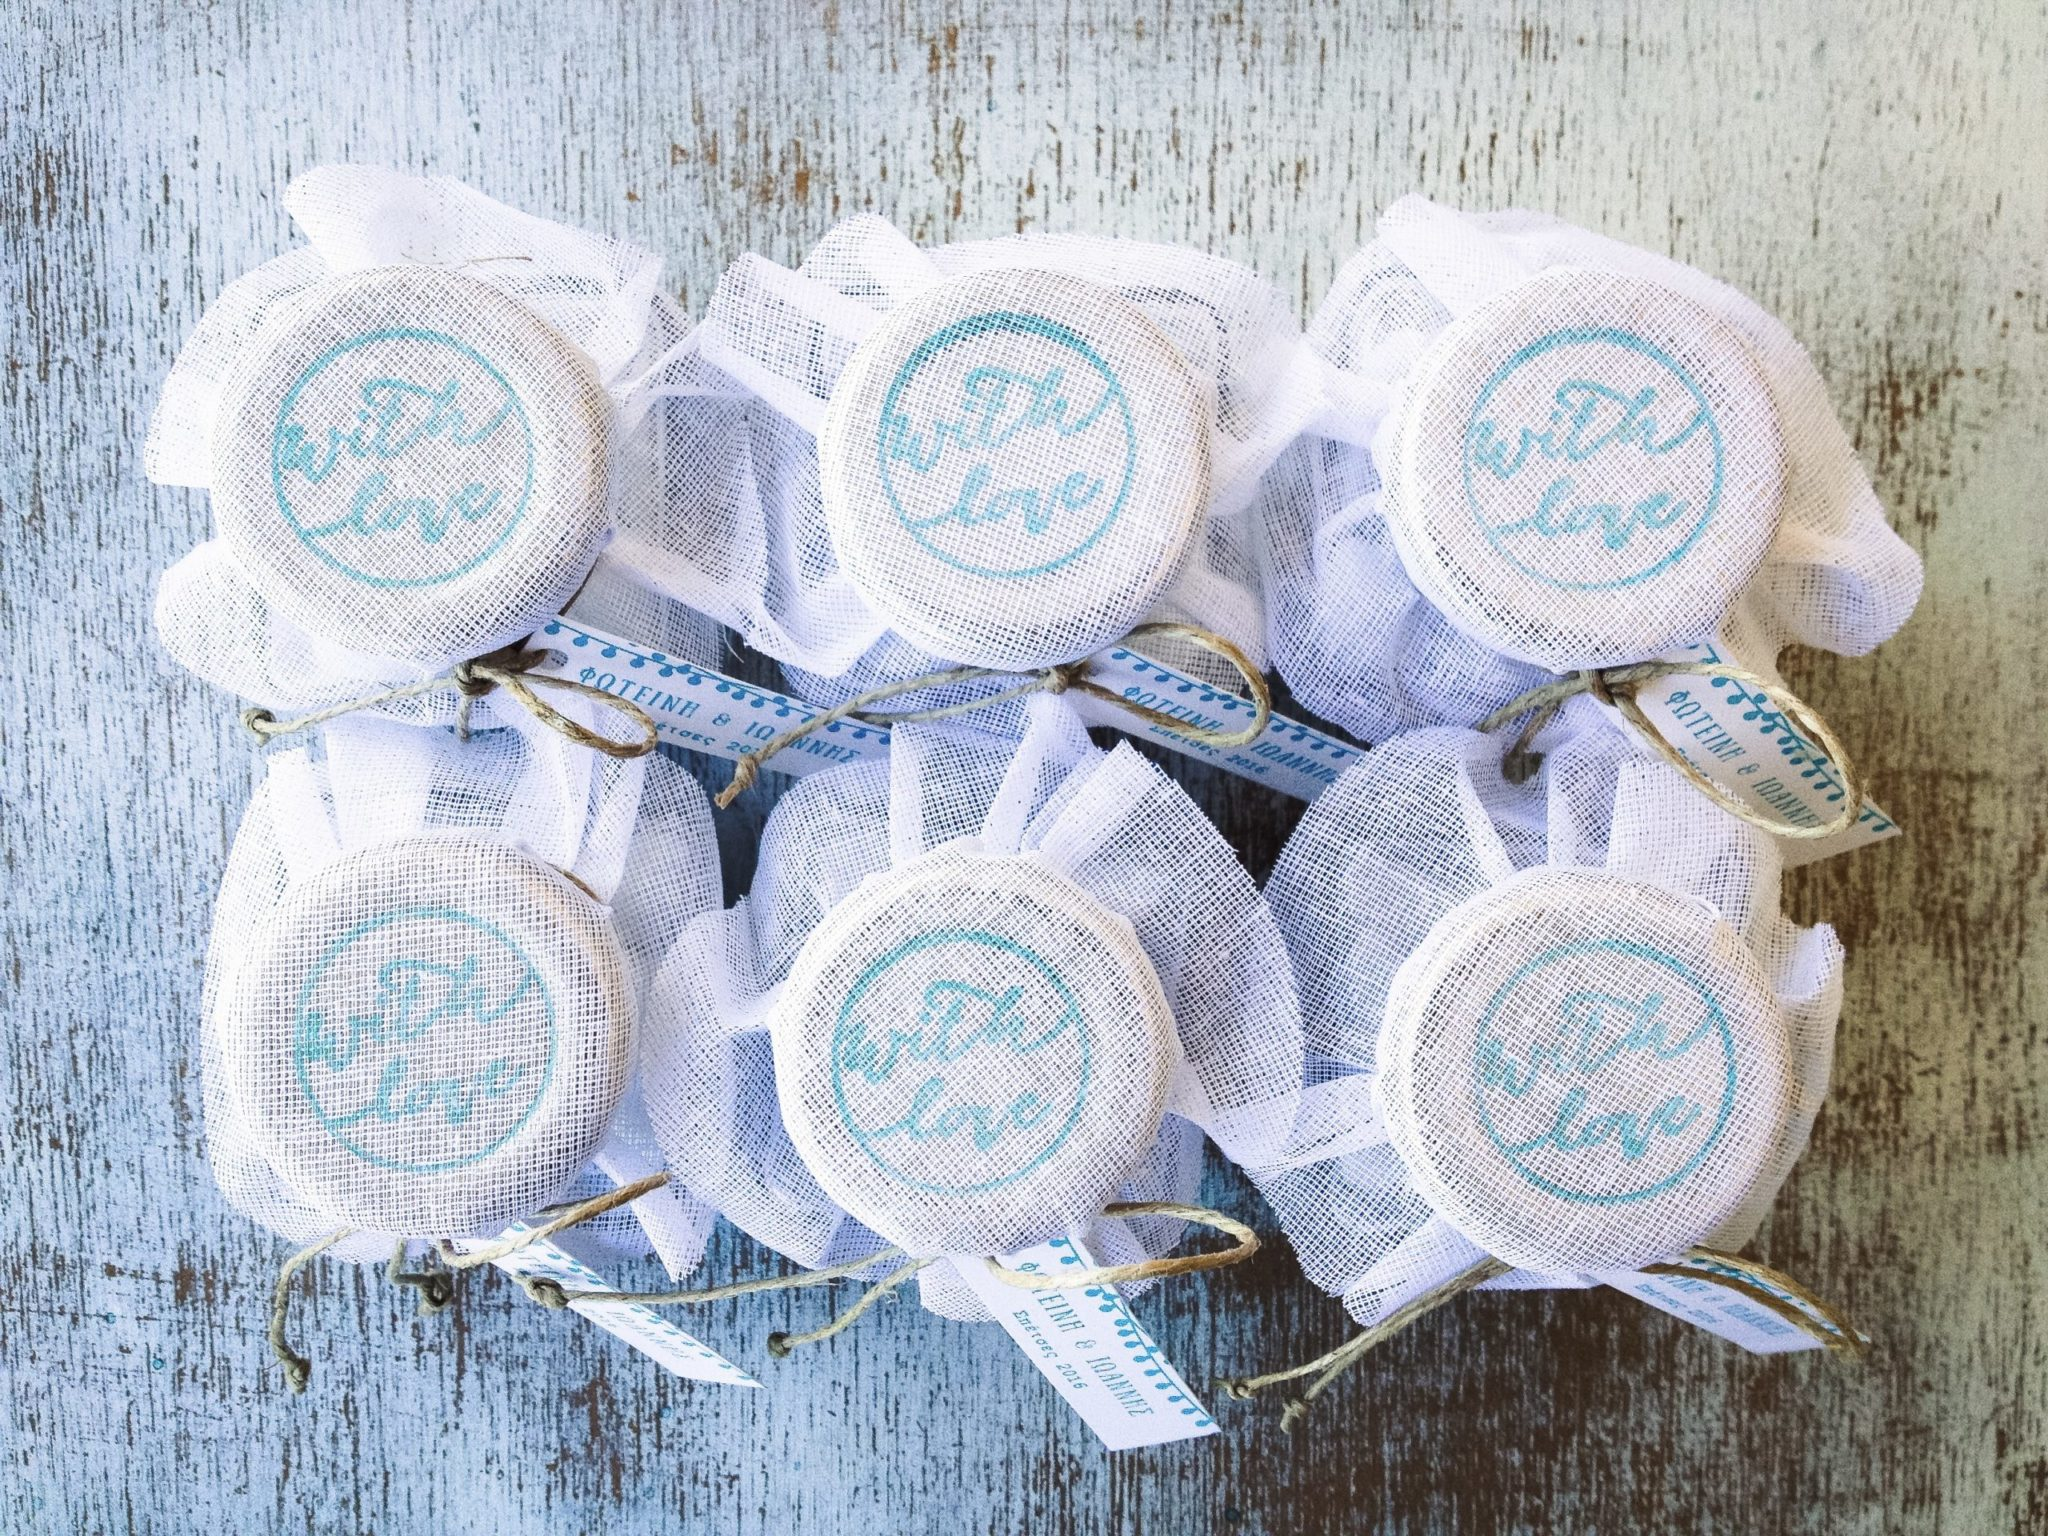 With Love-wedding favors-detail